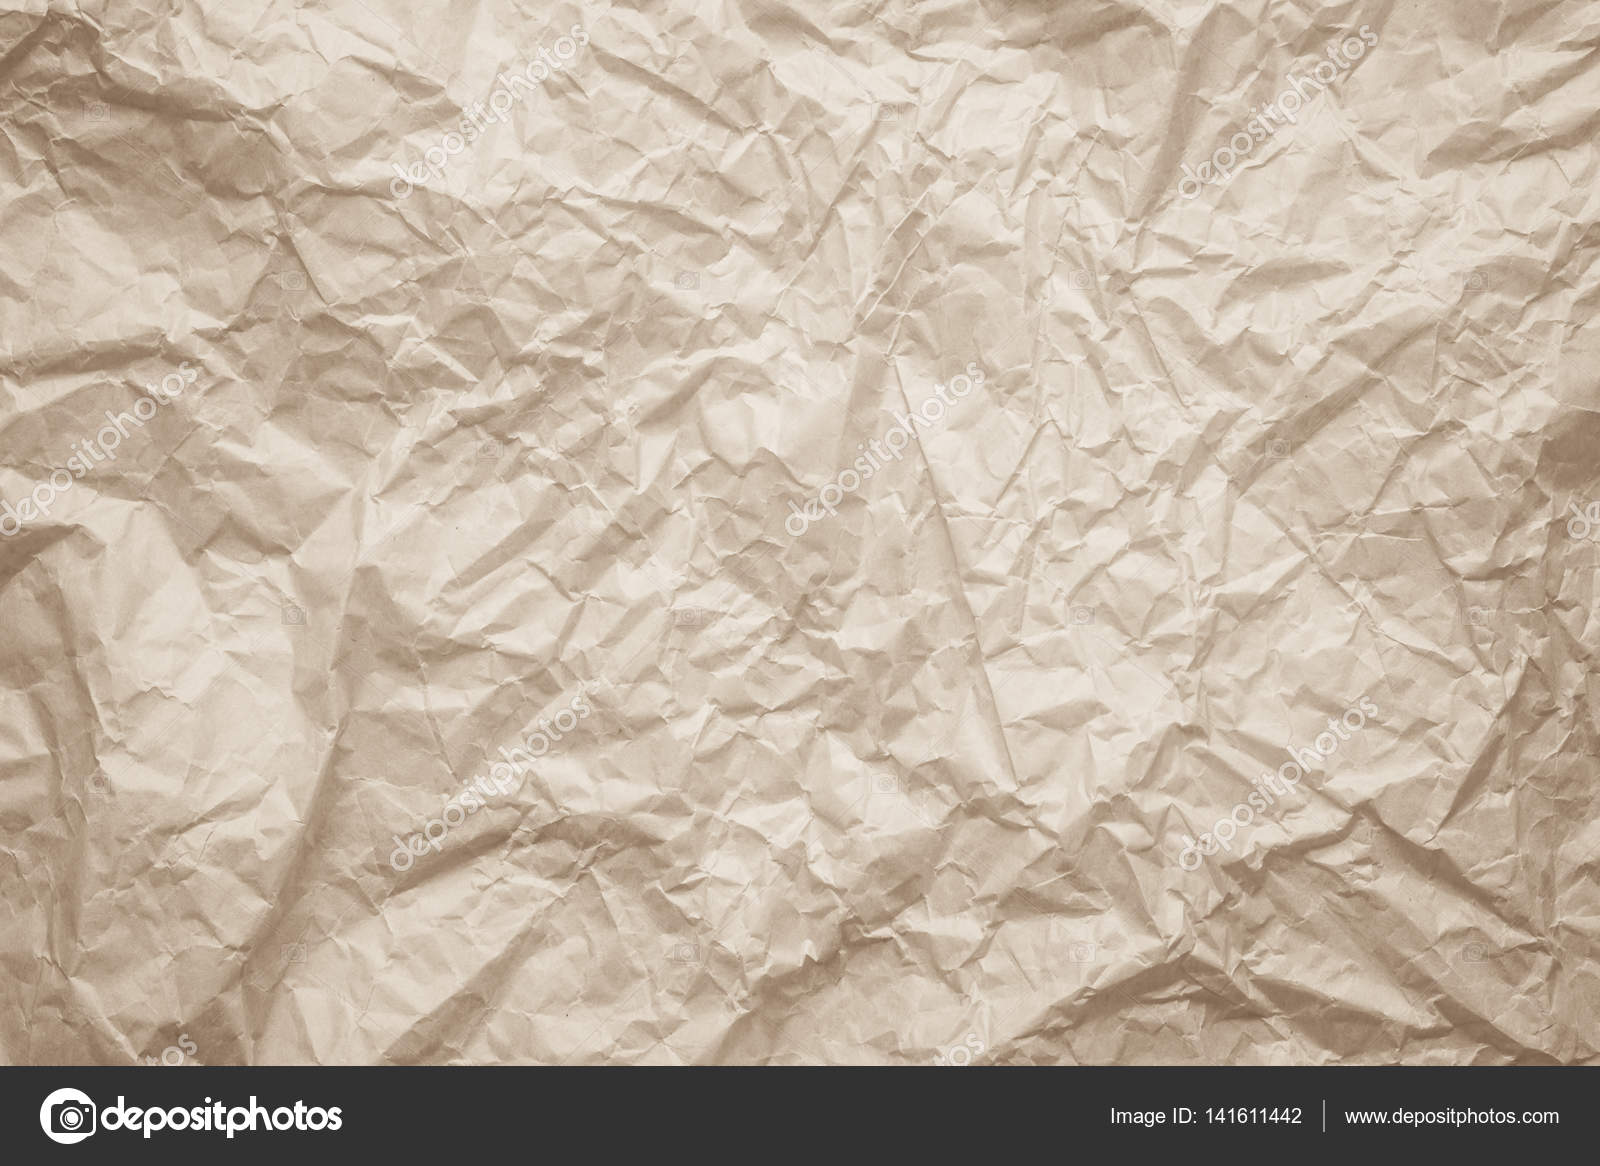 Natural Recycled Paper TextureNewspaper Texture Blank Old Stock Photo